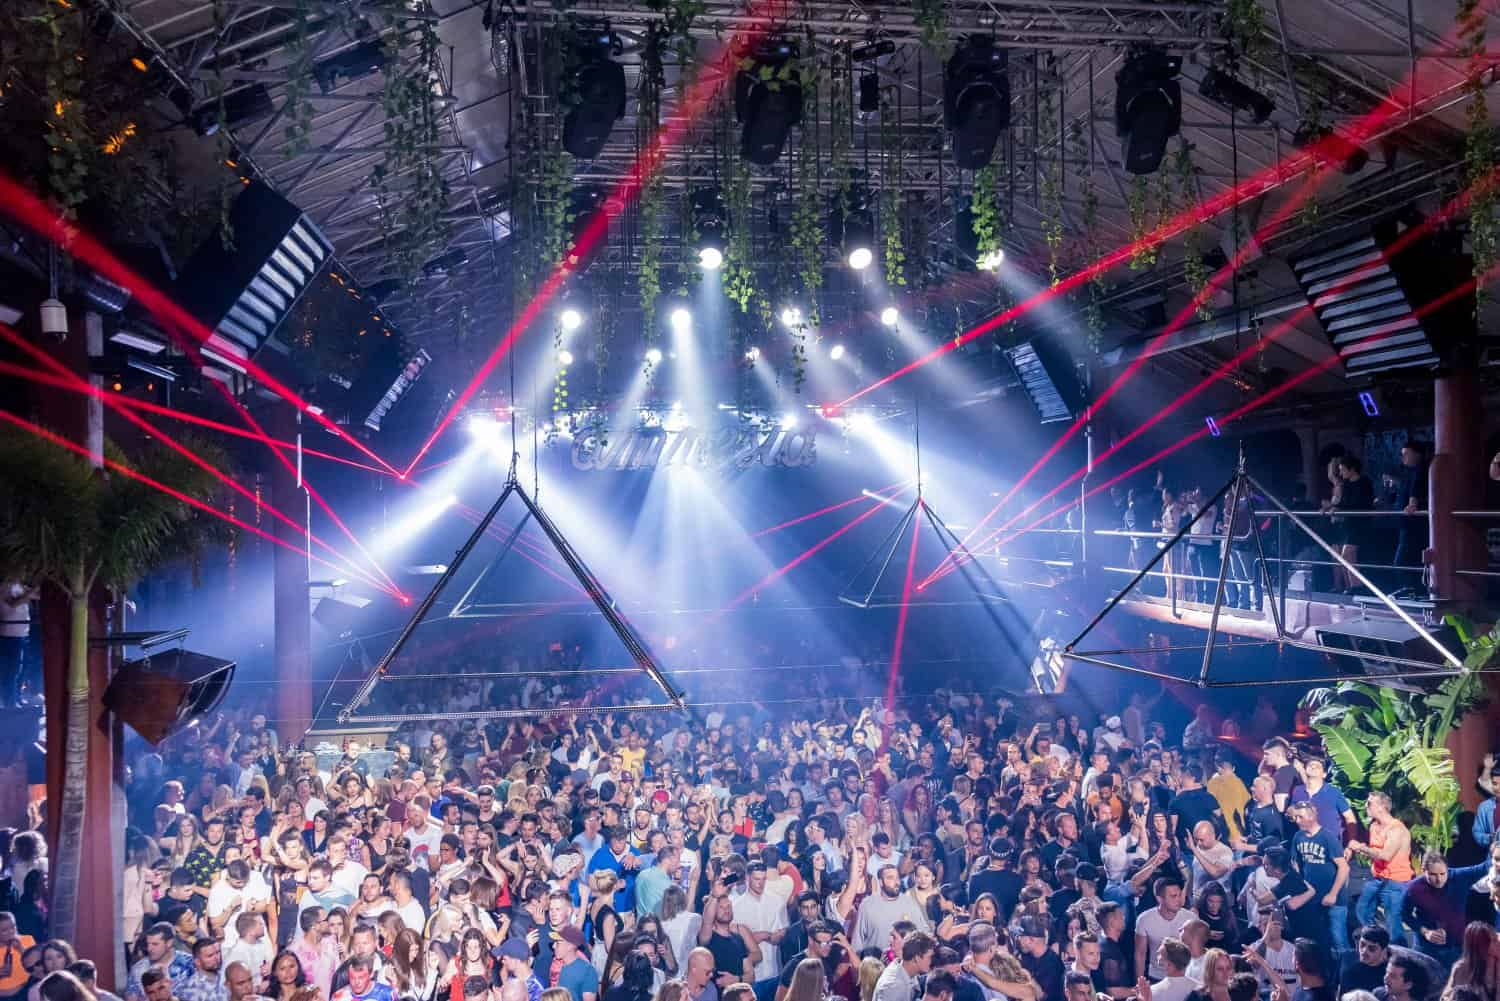 Amnesia Ibiza 2019 - Tickets, Events and Lineup 11